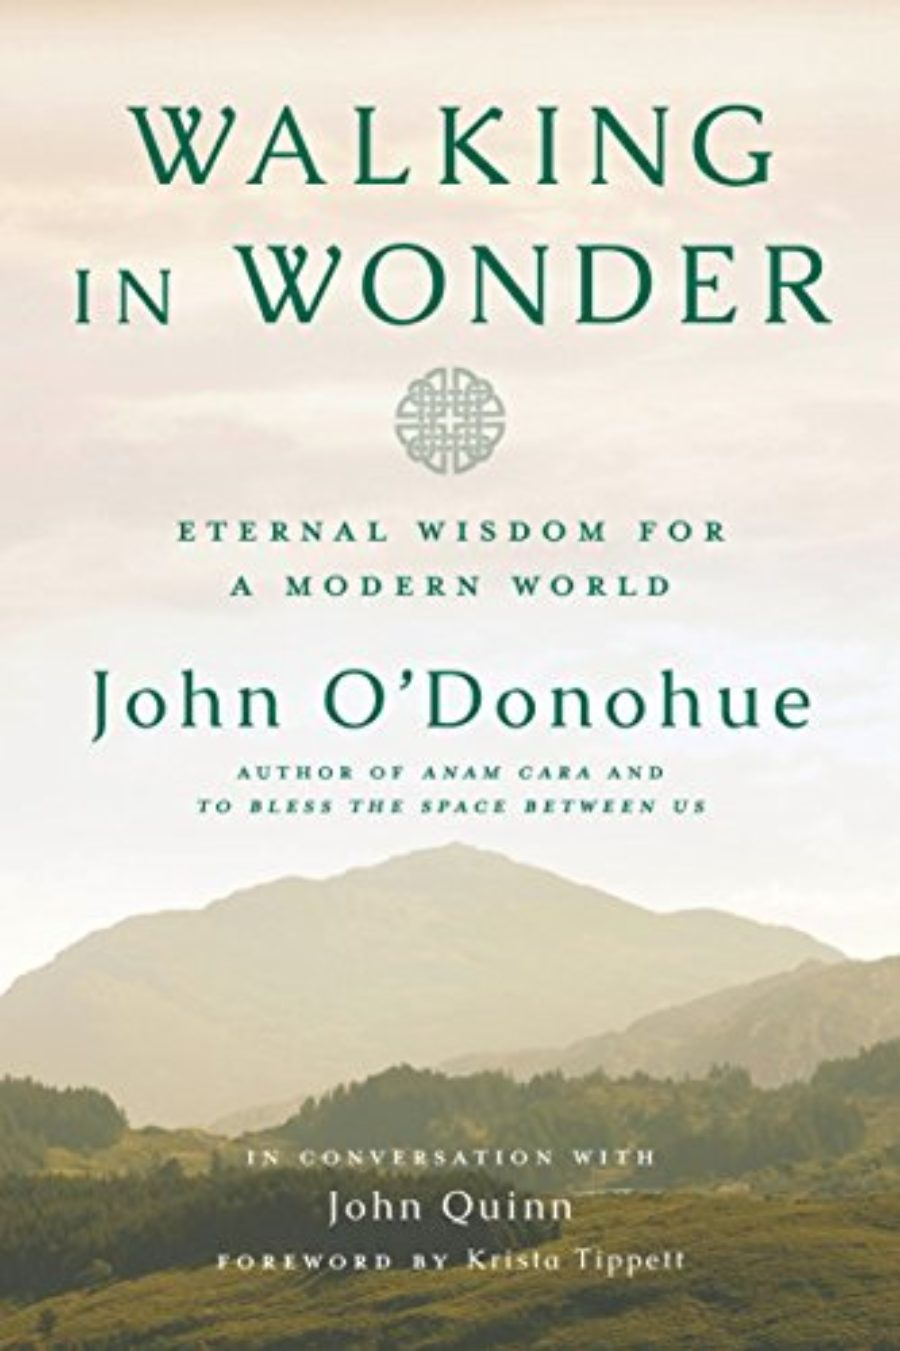 John O'Donohue — The Inner Landscape of Beauty - The On Being Project